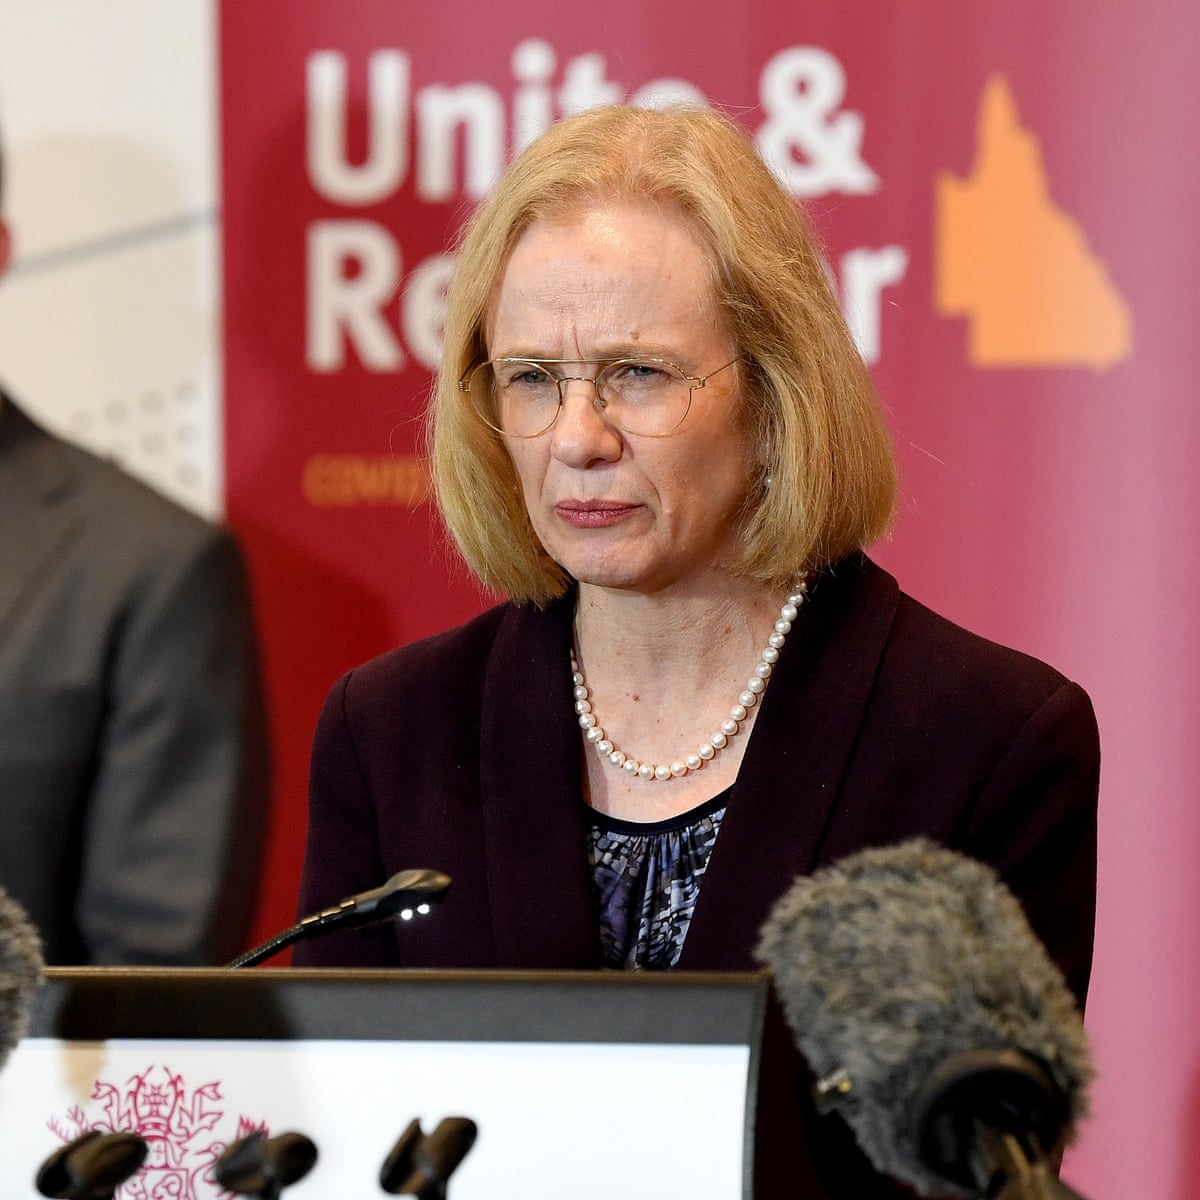 Queensland S Chief Health Officer Given Police Protection After Death Threats Queensland The Guardian